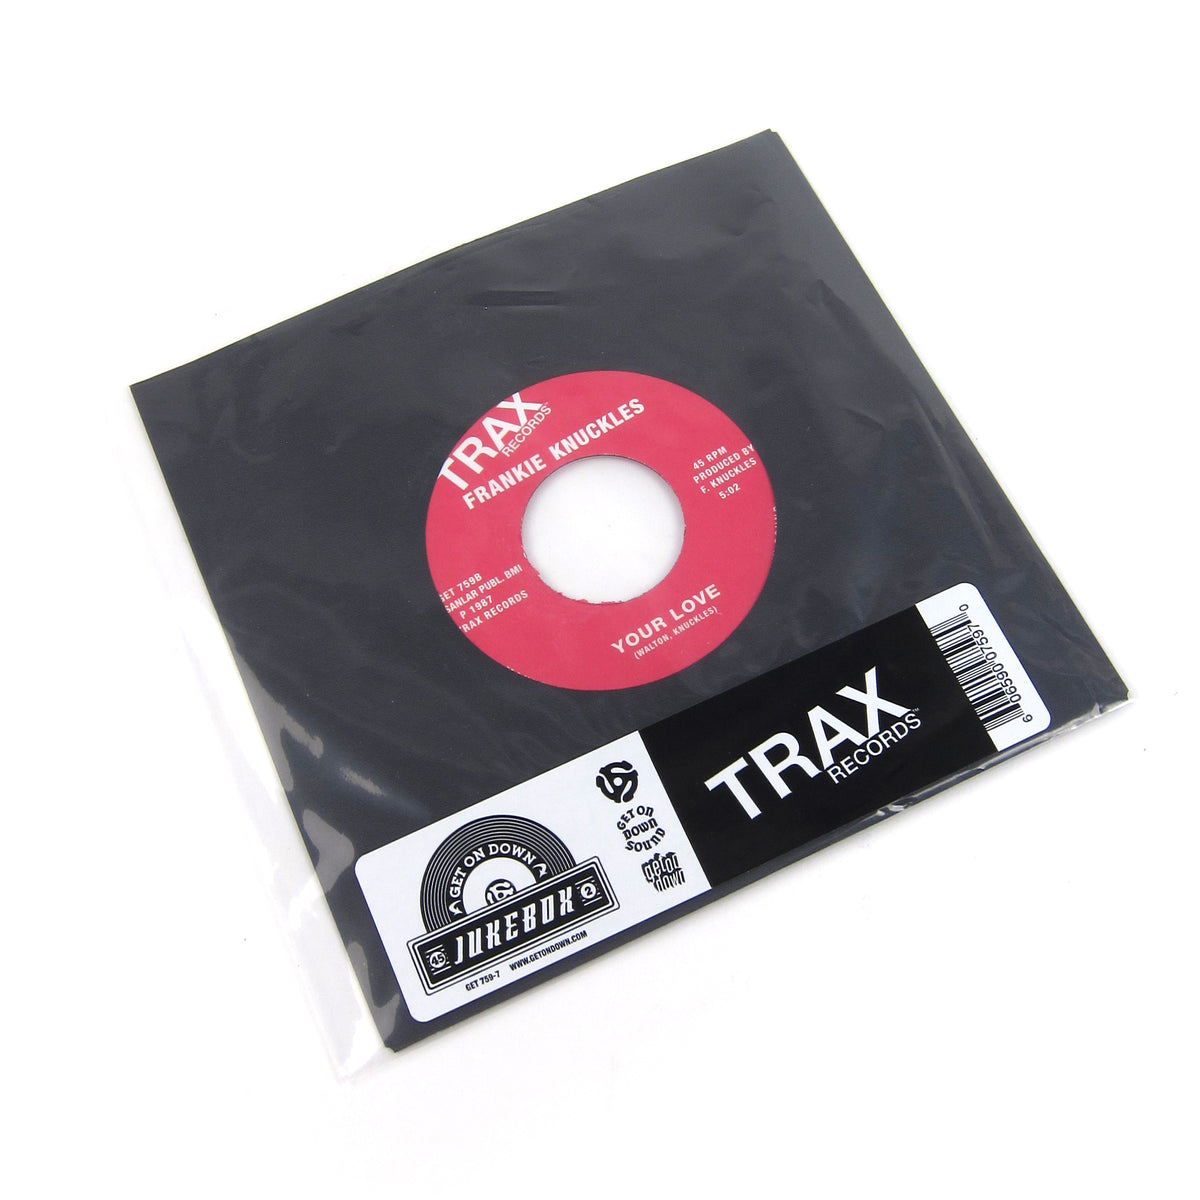 Frankie Knuckles: Baby Wants To Ride / Your Love Vinyl 7""